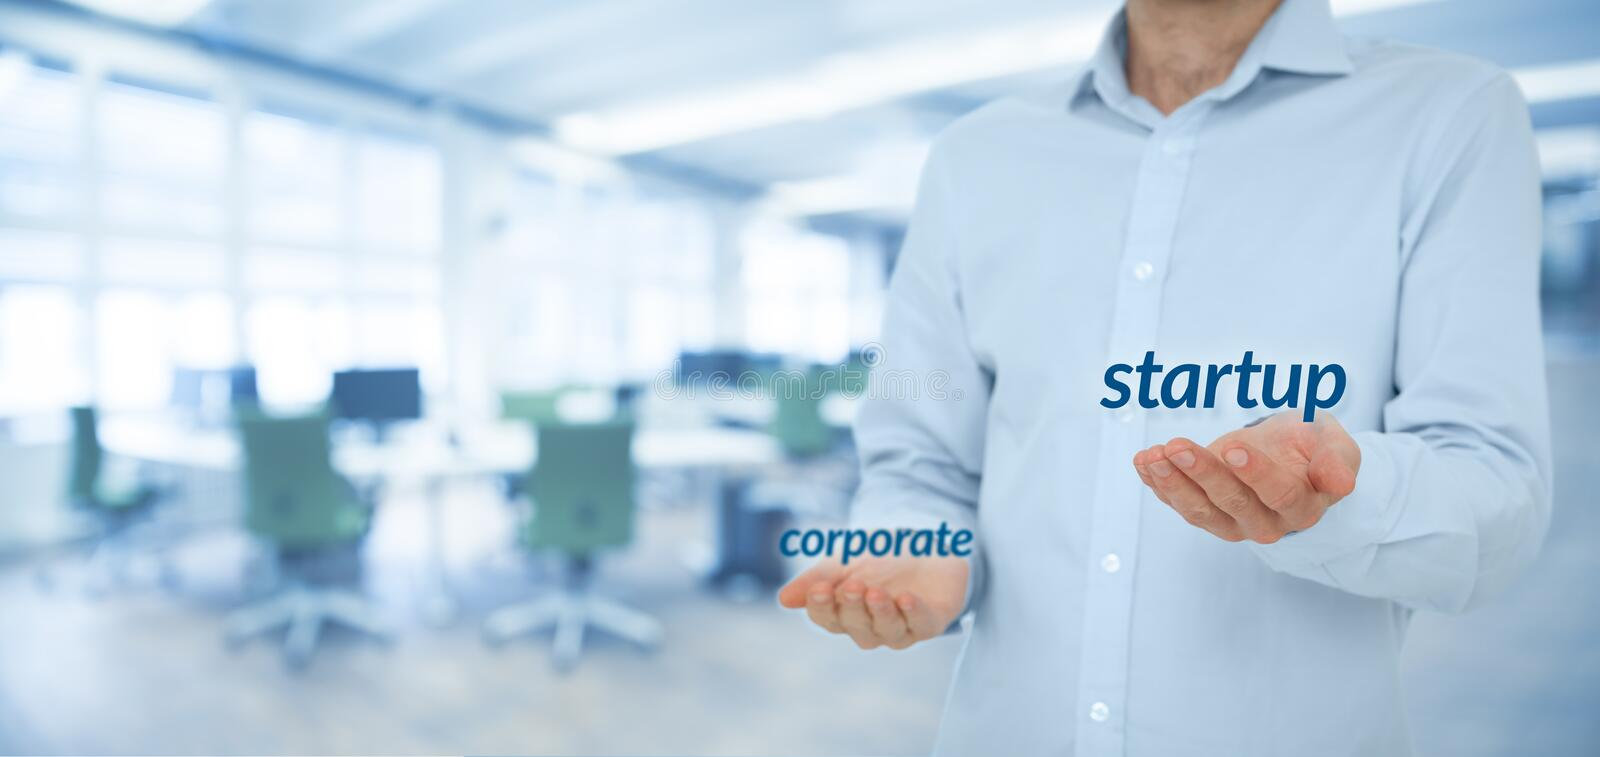 Startup versus corporate. Business concept. Young businessman (or employee) prefer startup company against corporation. Wide banner composition and office in royalty free stock image